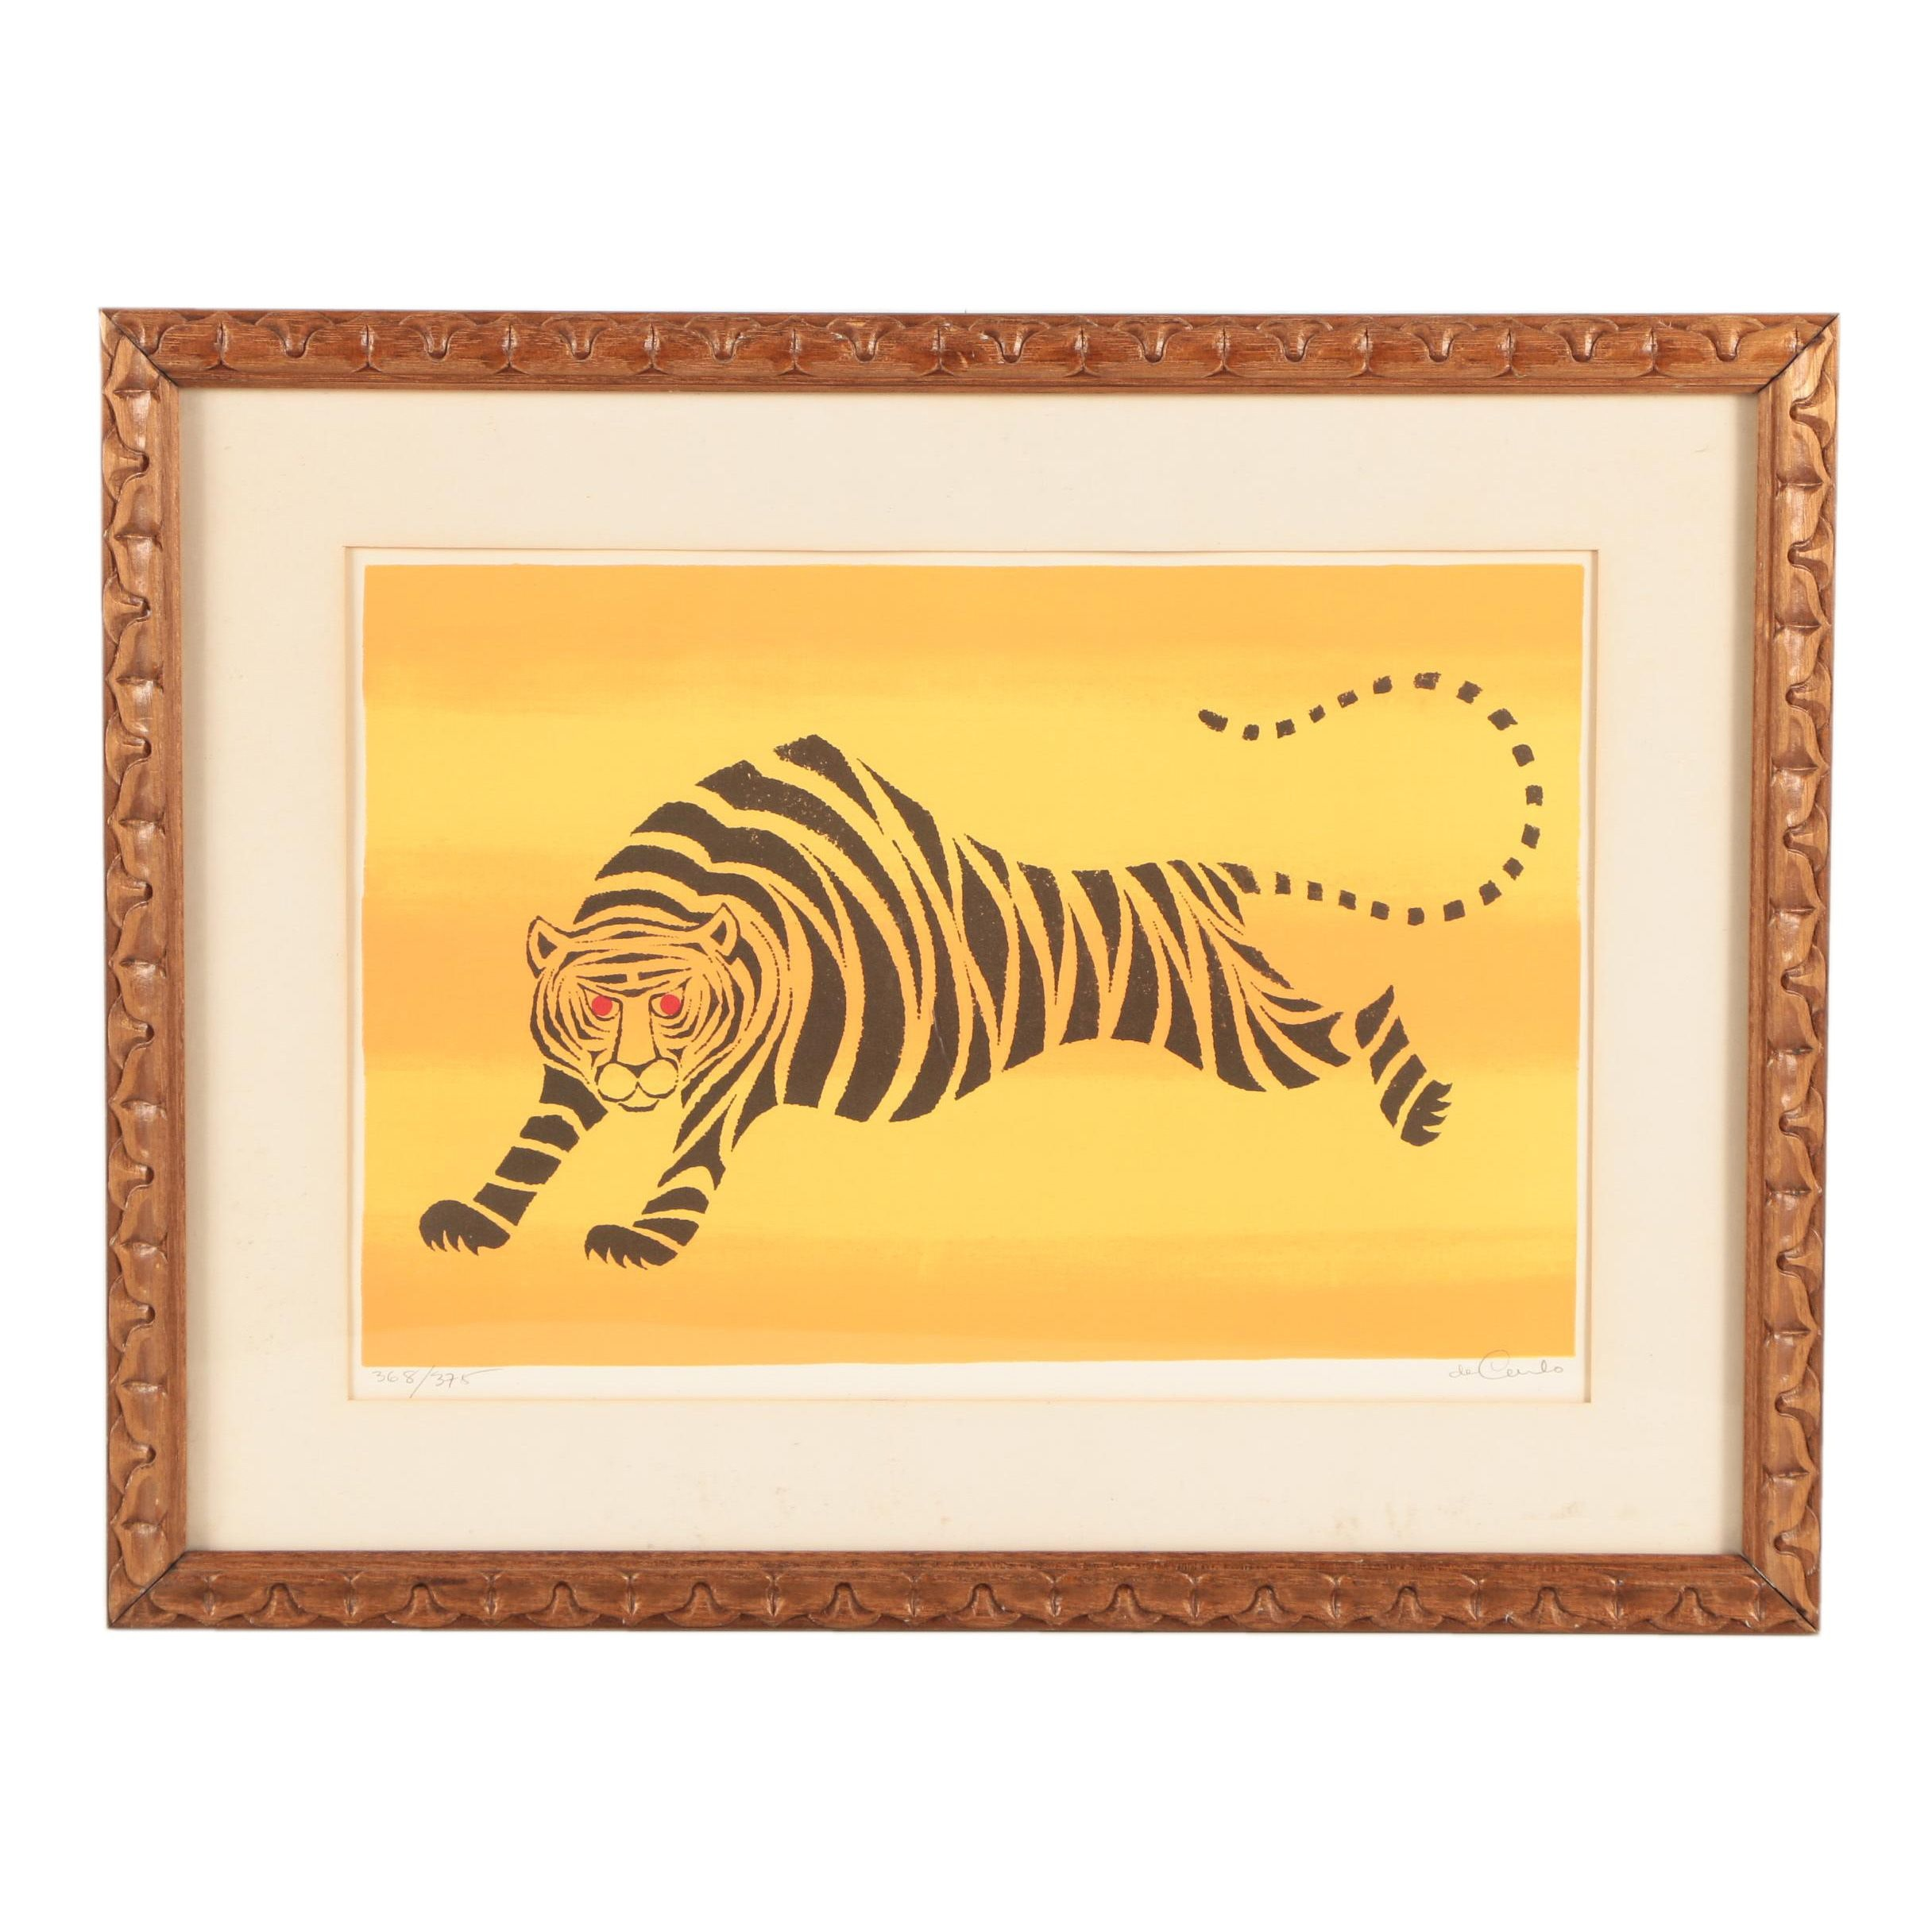 Keith Llewellyn DeCarlo Limited Edition Lithograph of a Tiger